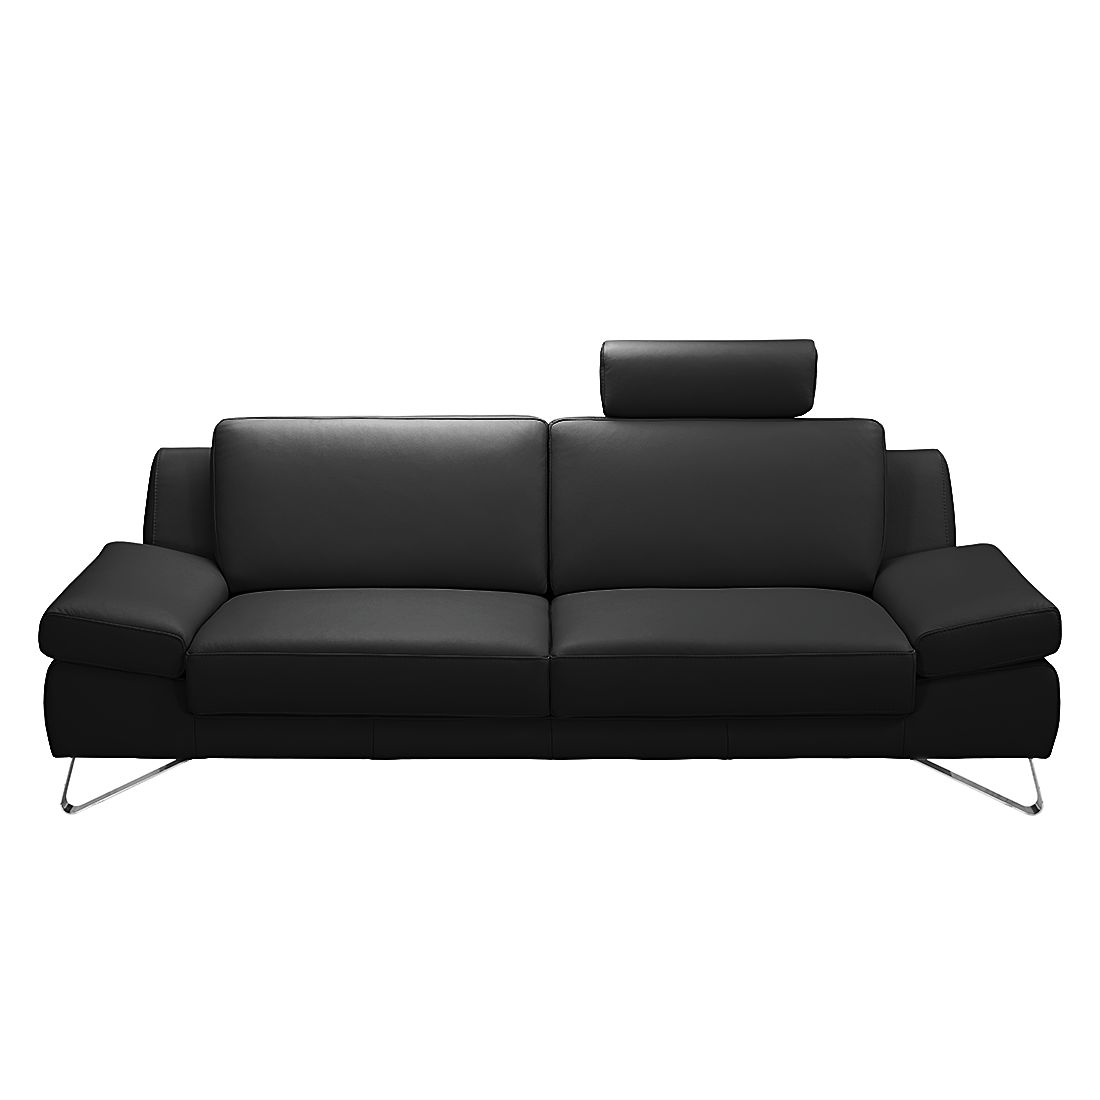 sofa silvano von loftscape in schwarz mit kopfst tze nur. Black Bedroom Furniture Sets. Home Design Ideas